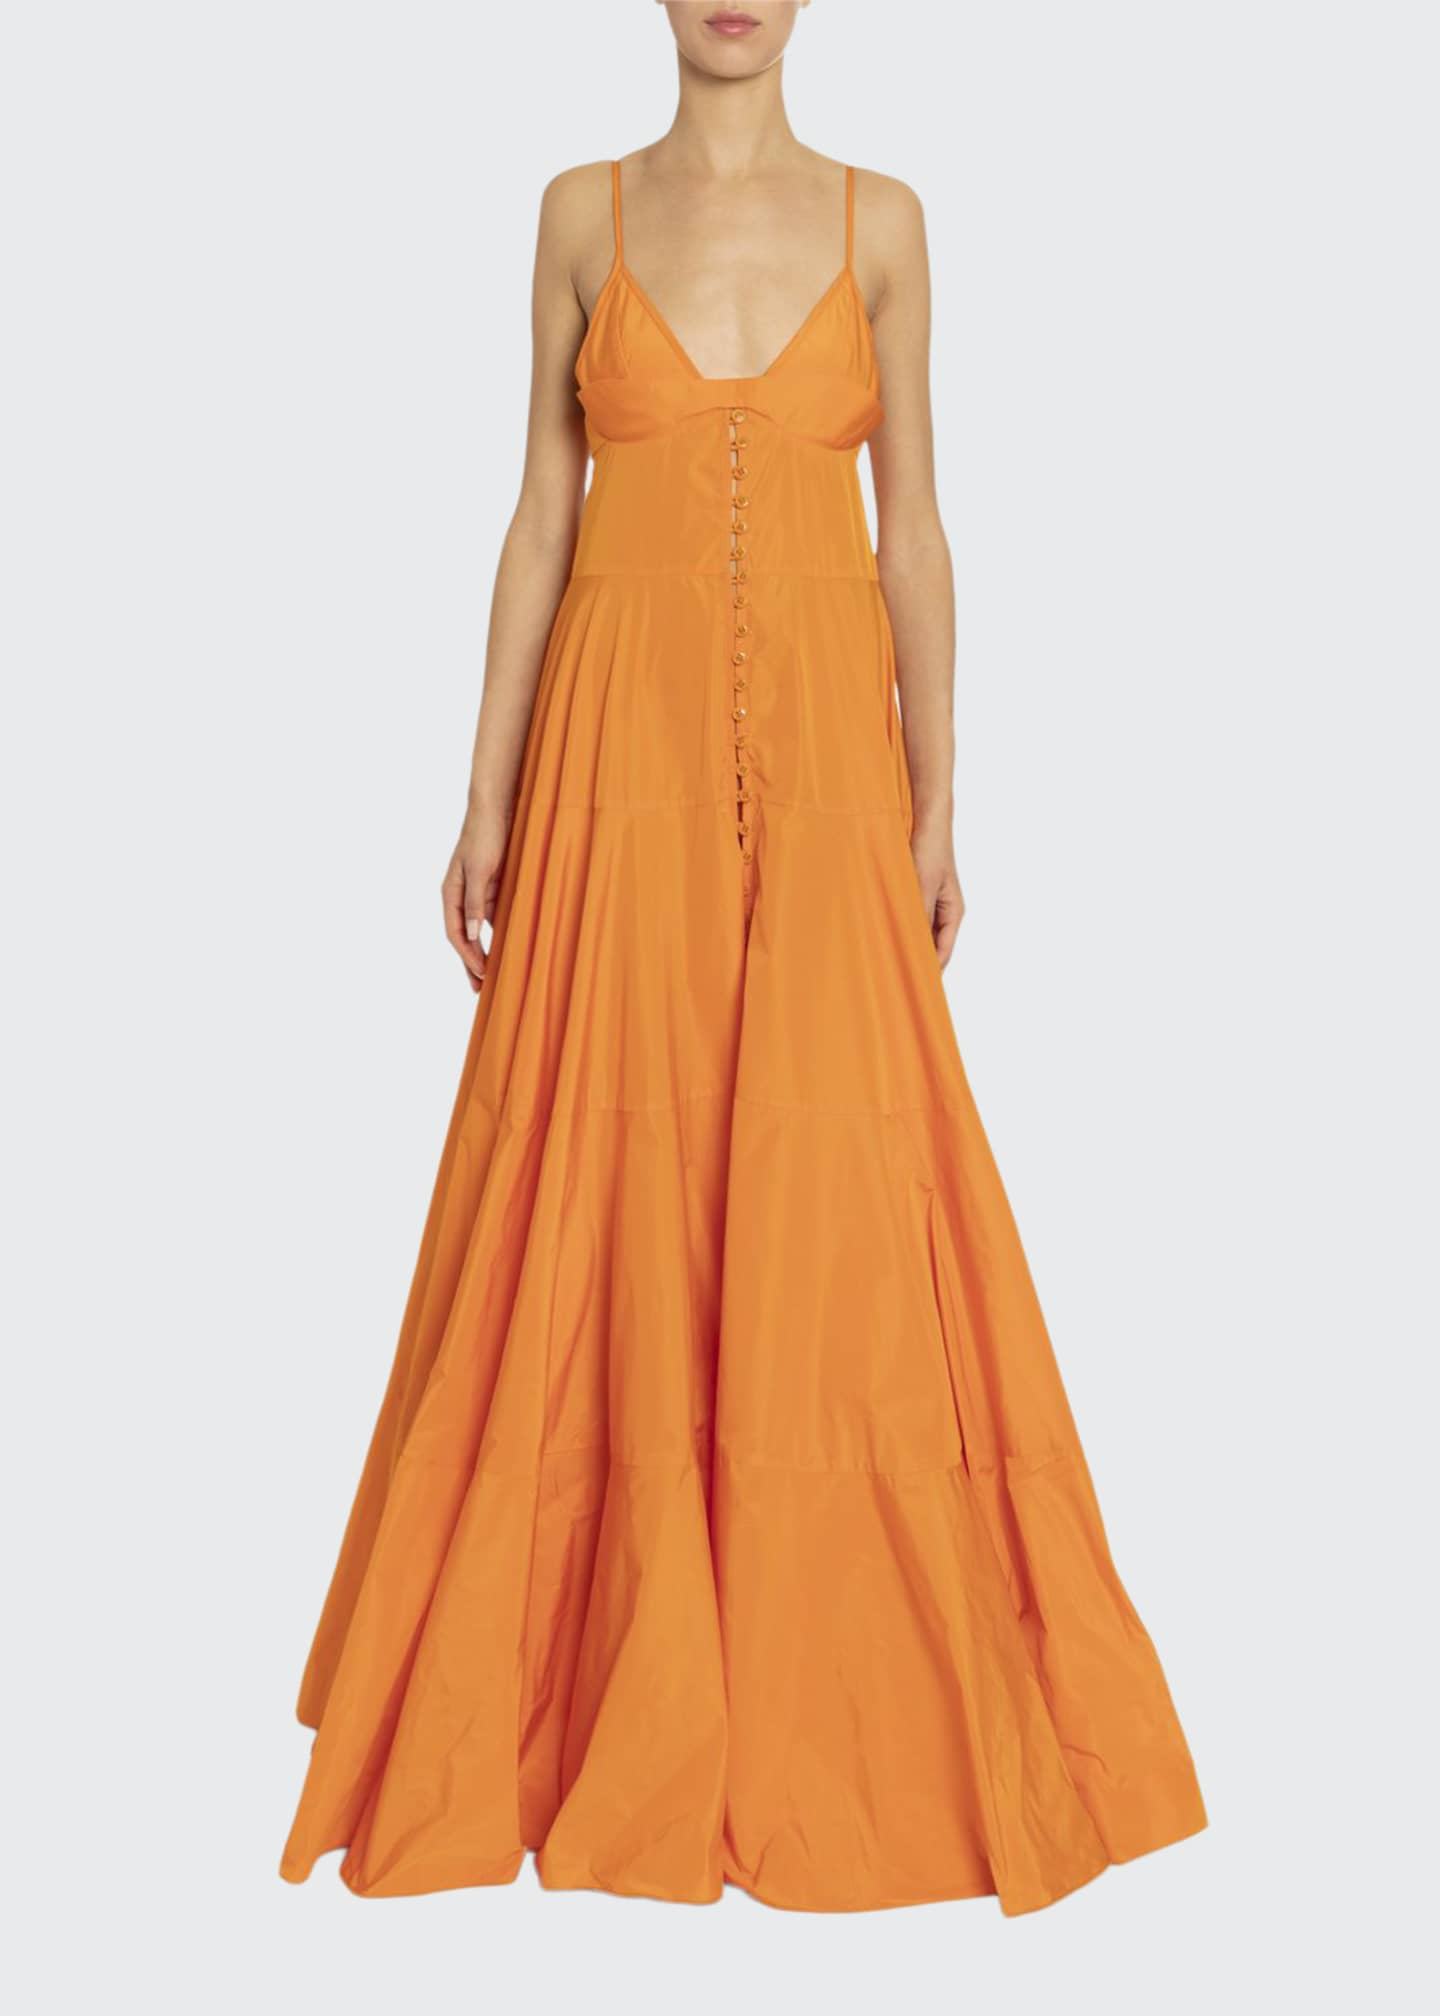 Jacquemus La Manosque Sleeveless Button-Front Tiered Dress